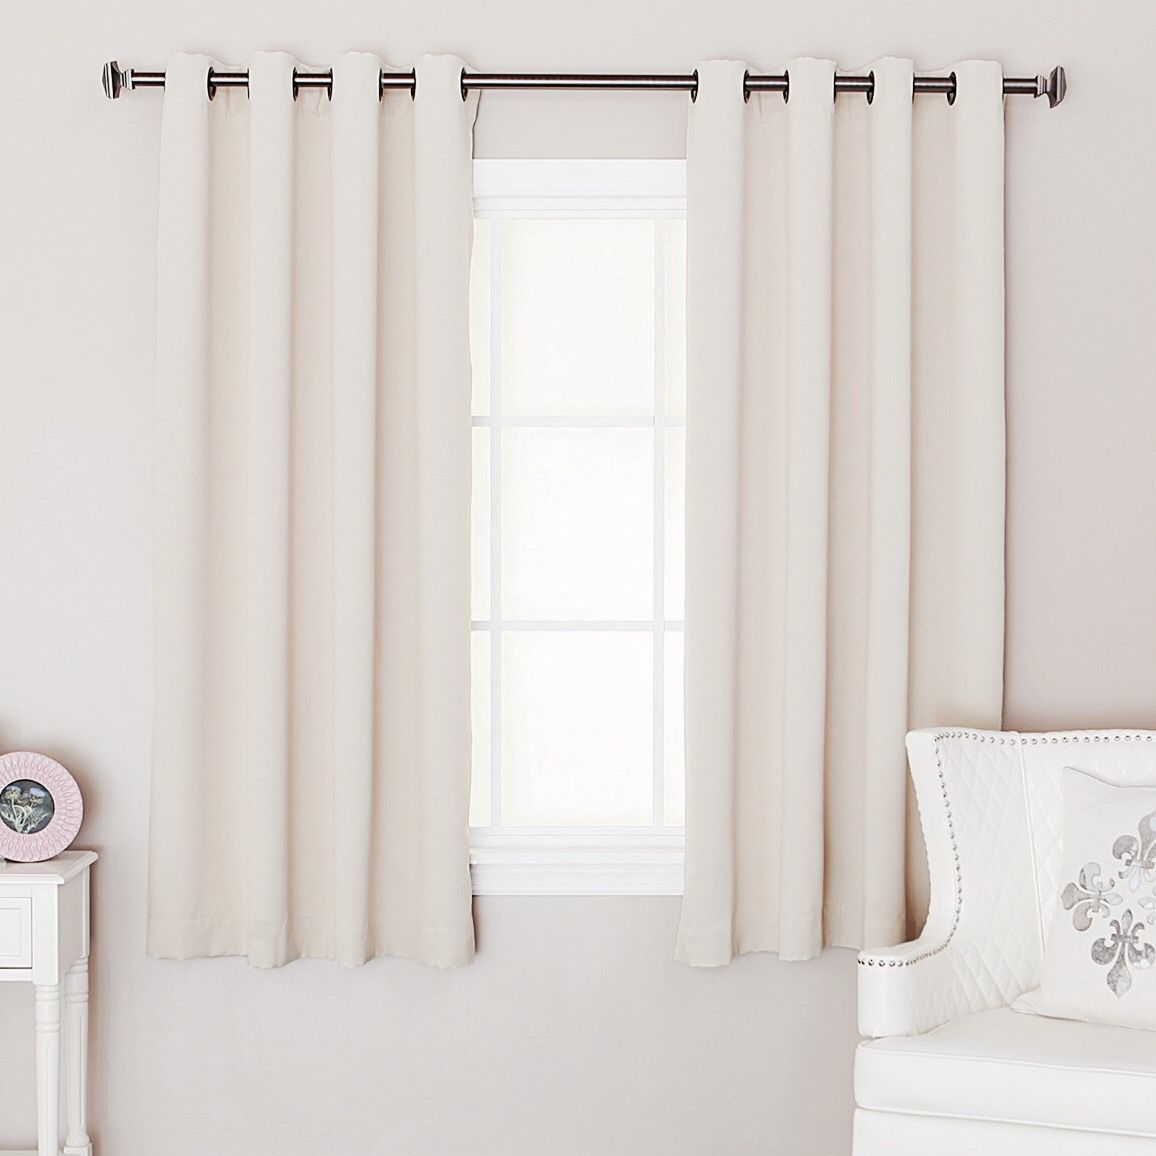 Small window curtain ideas interior pinterest short for Window valances for bedroom